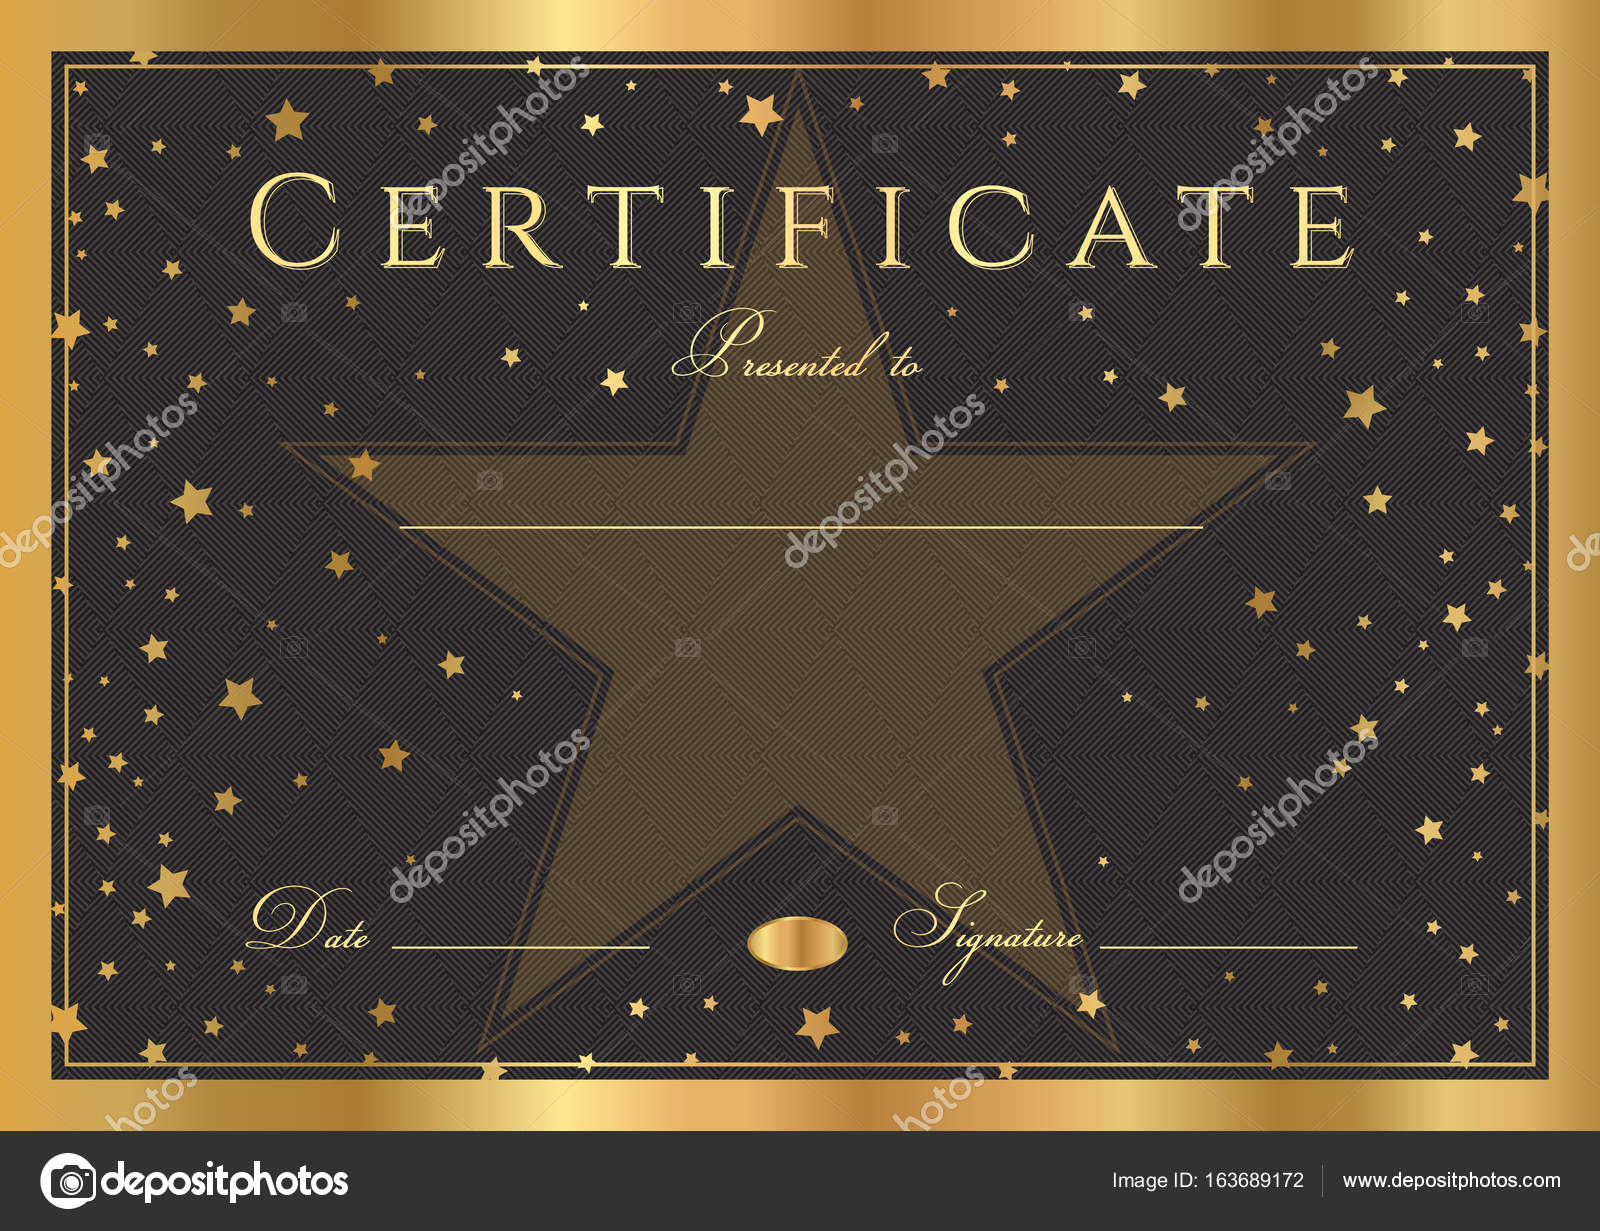 Certificate Diploma Of Completion Abstract Design Template Black